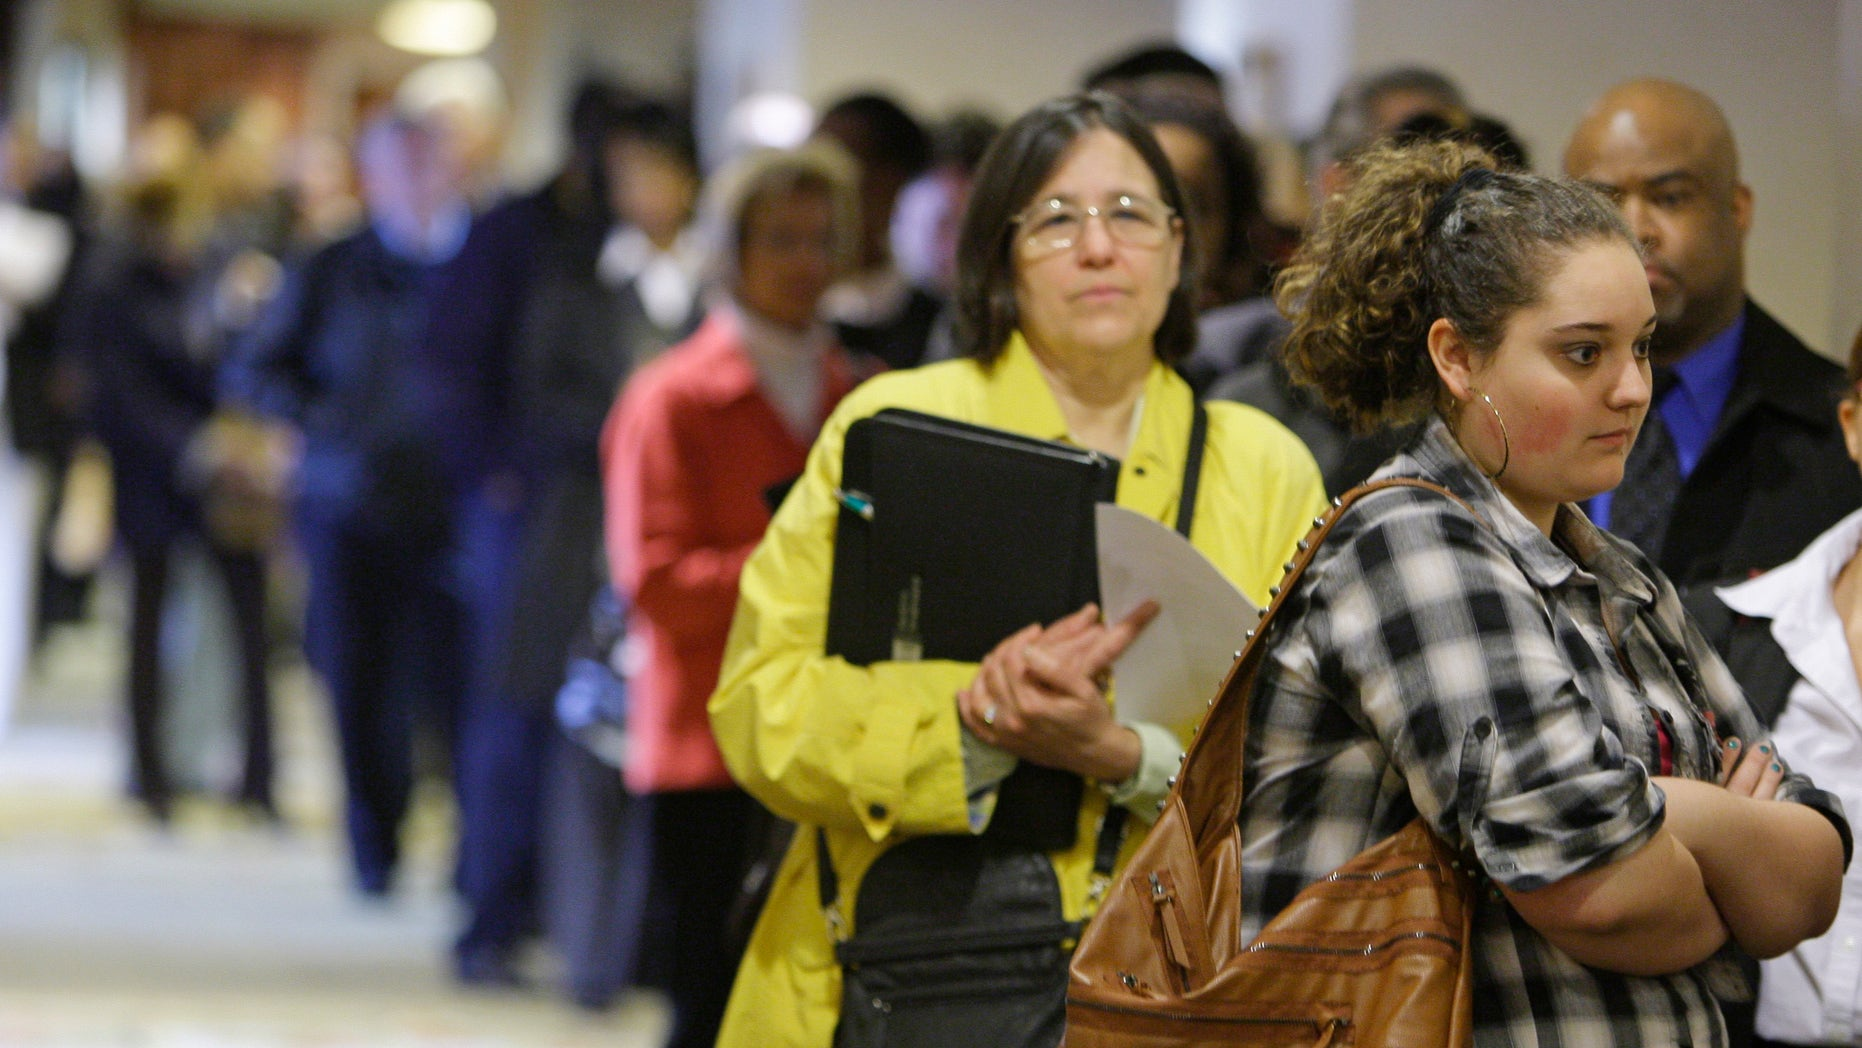 May 3, 2011: Samantha Ferrara, 19, waits in line for a job fair to open, in Independence, Ohio.